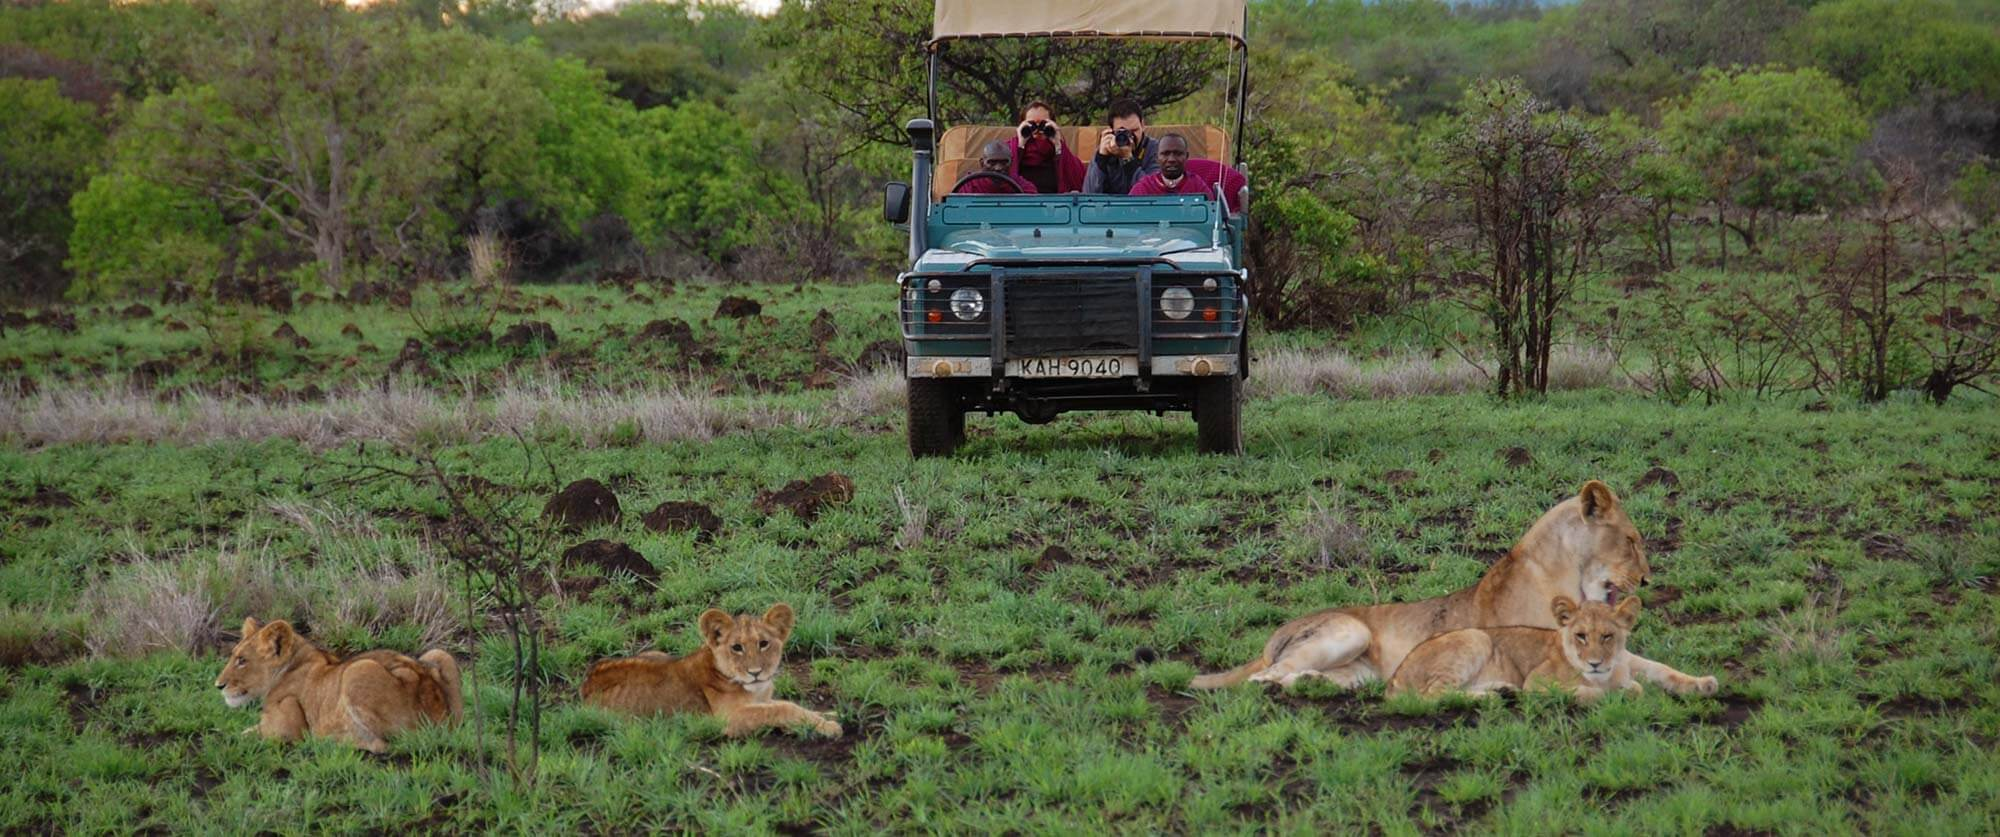 Kenya Big 5 Wildlife Safari - Lions on Game Drive - Campi ya Kanzi